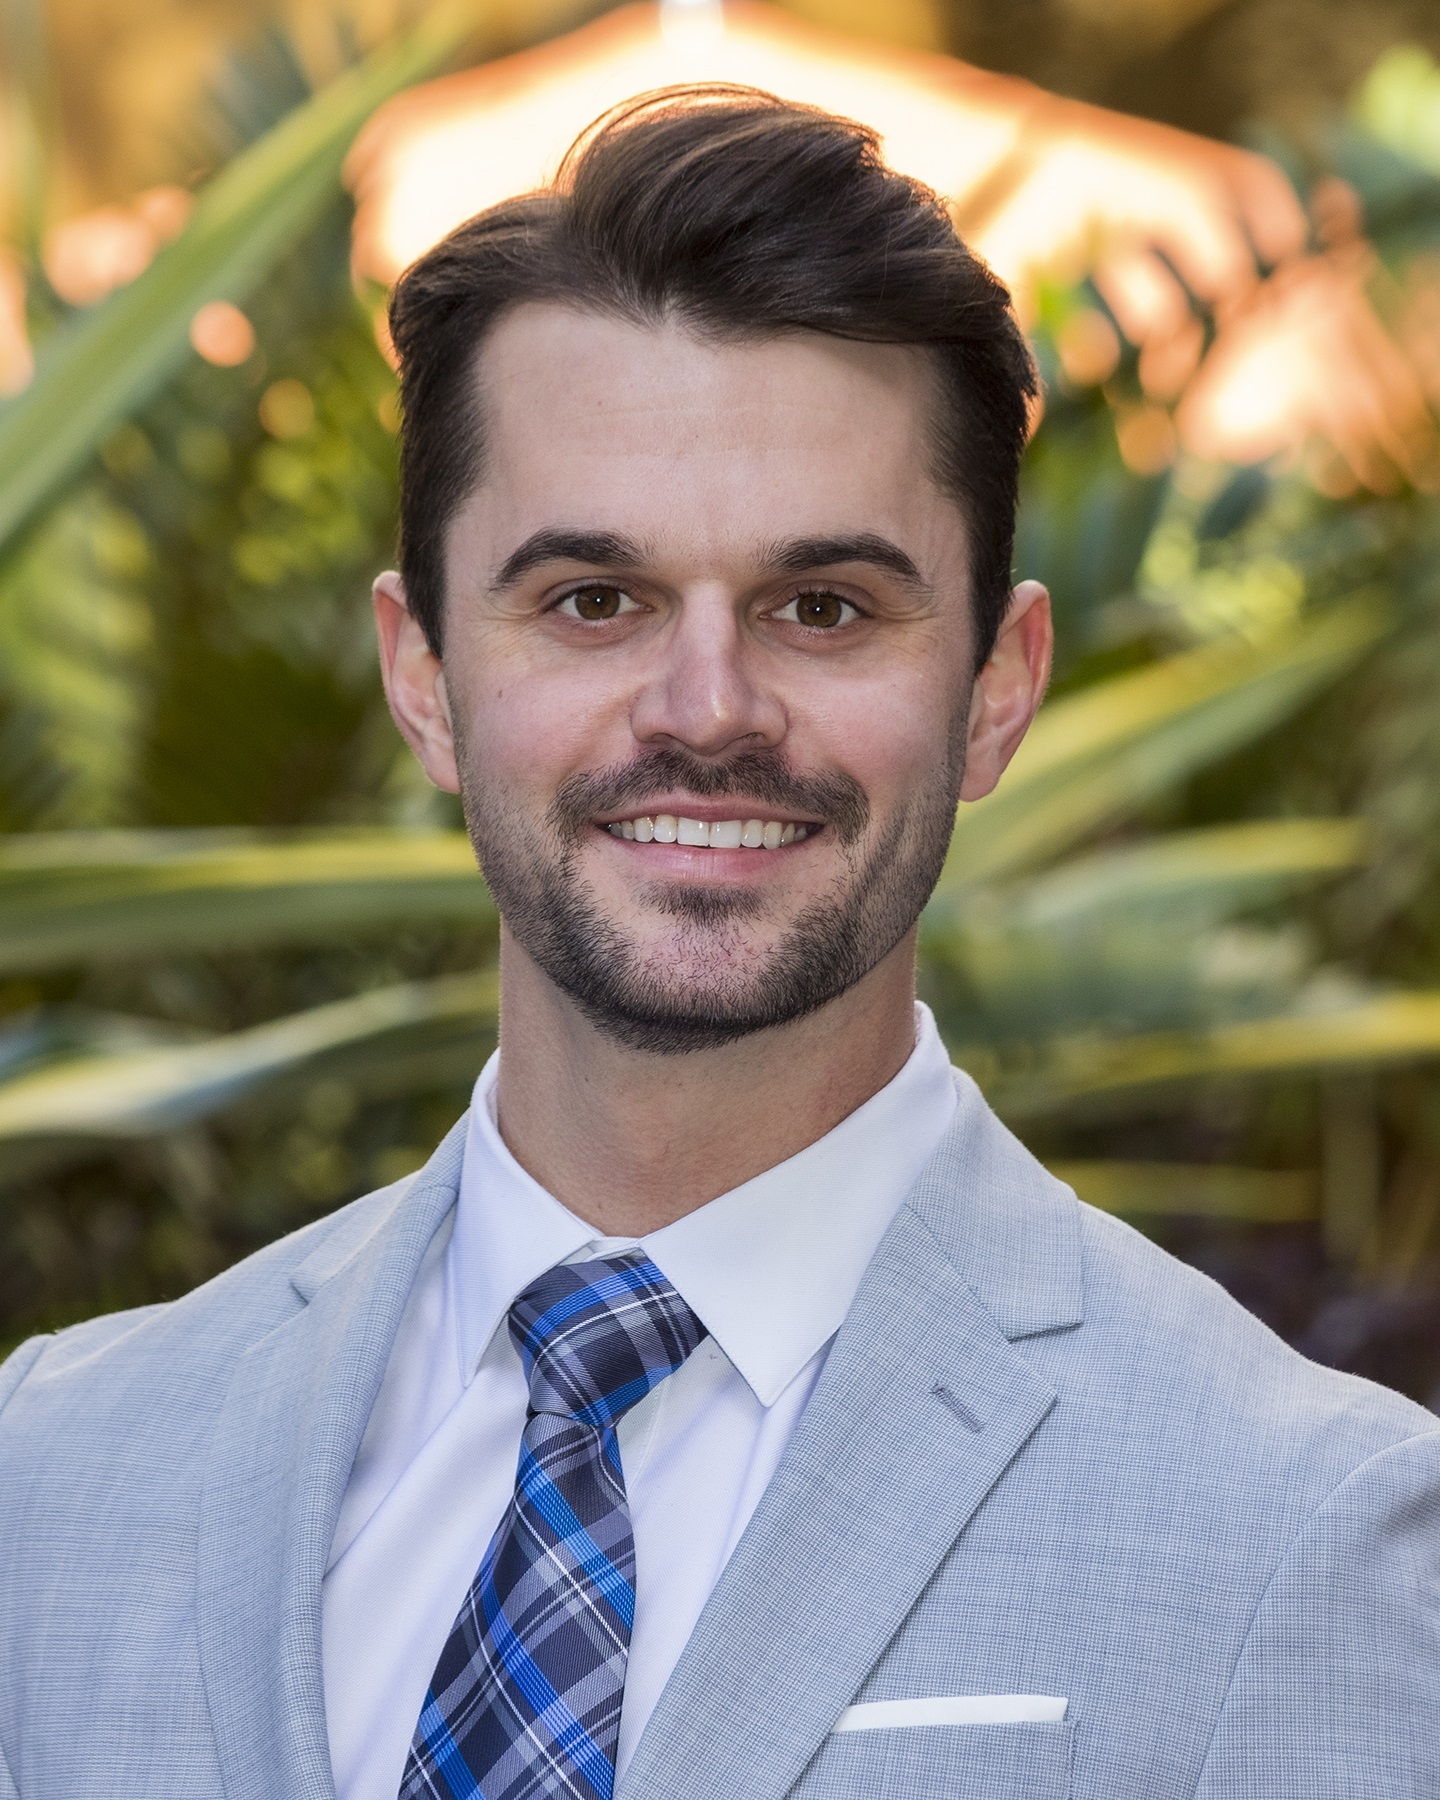 Brendon Bock, MARSH & MCLENNAN AGENCY WEST